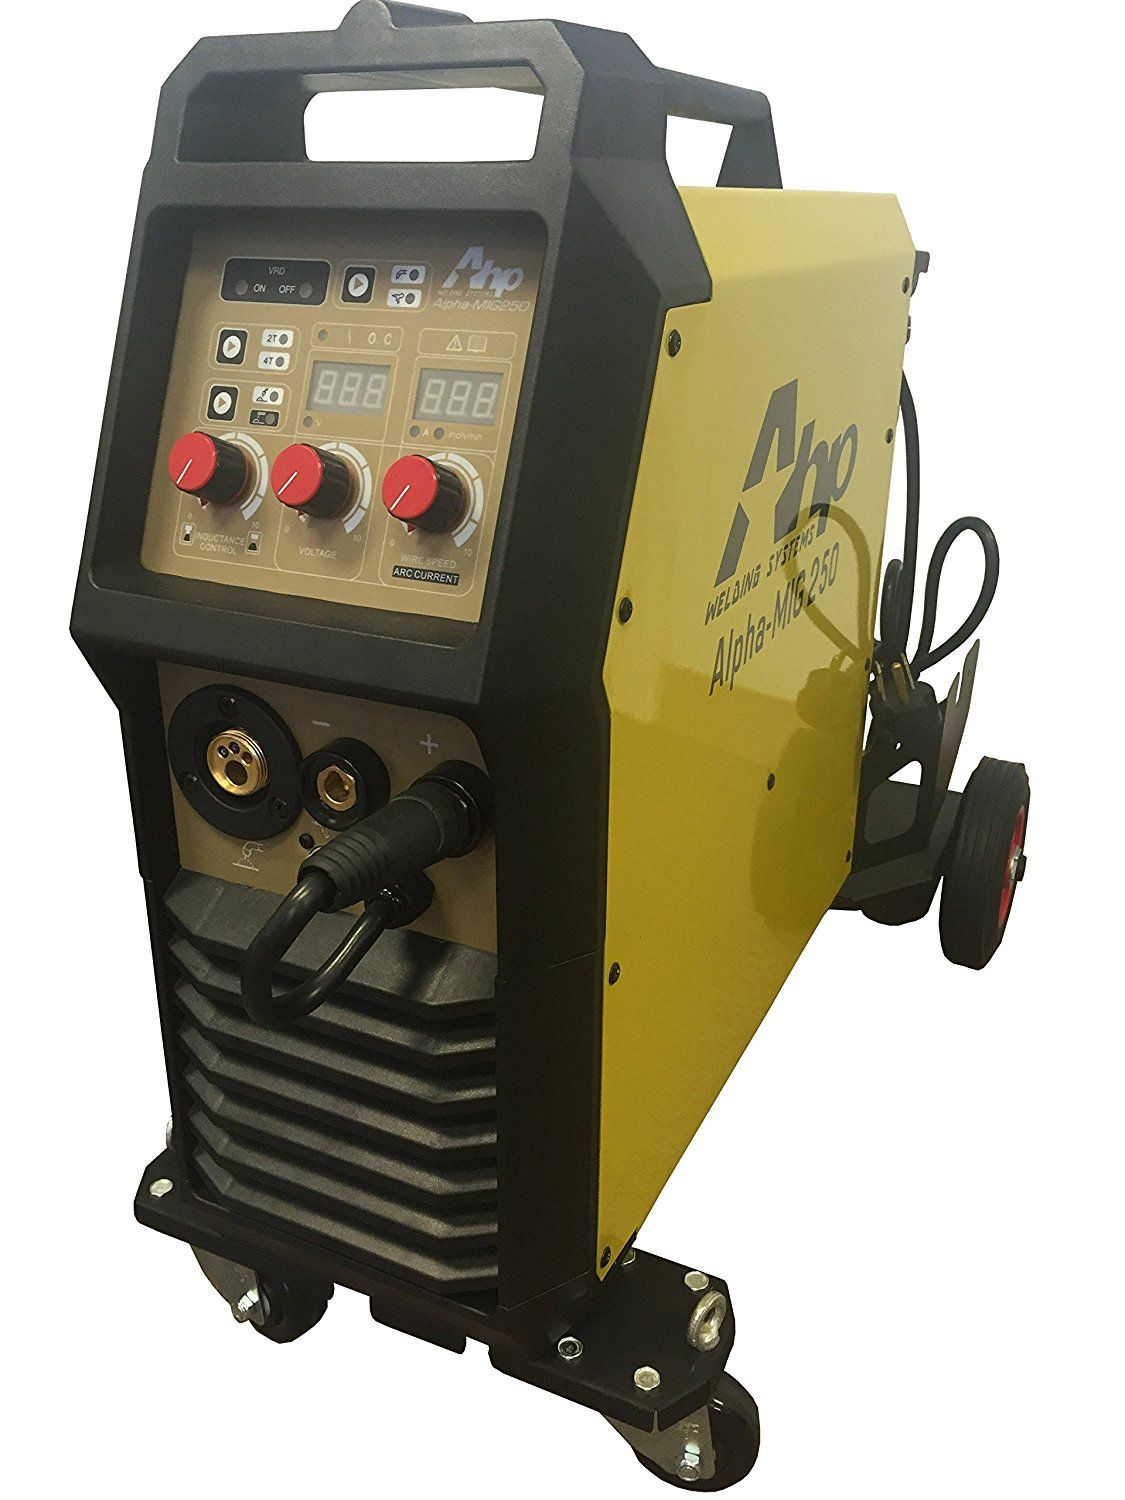 AHP MIG WELDER - [Alpha Mig 250] is great MIG welder with the most